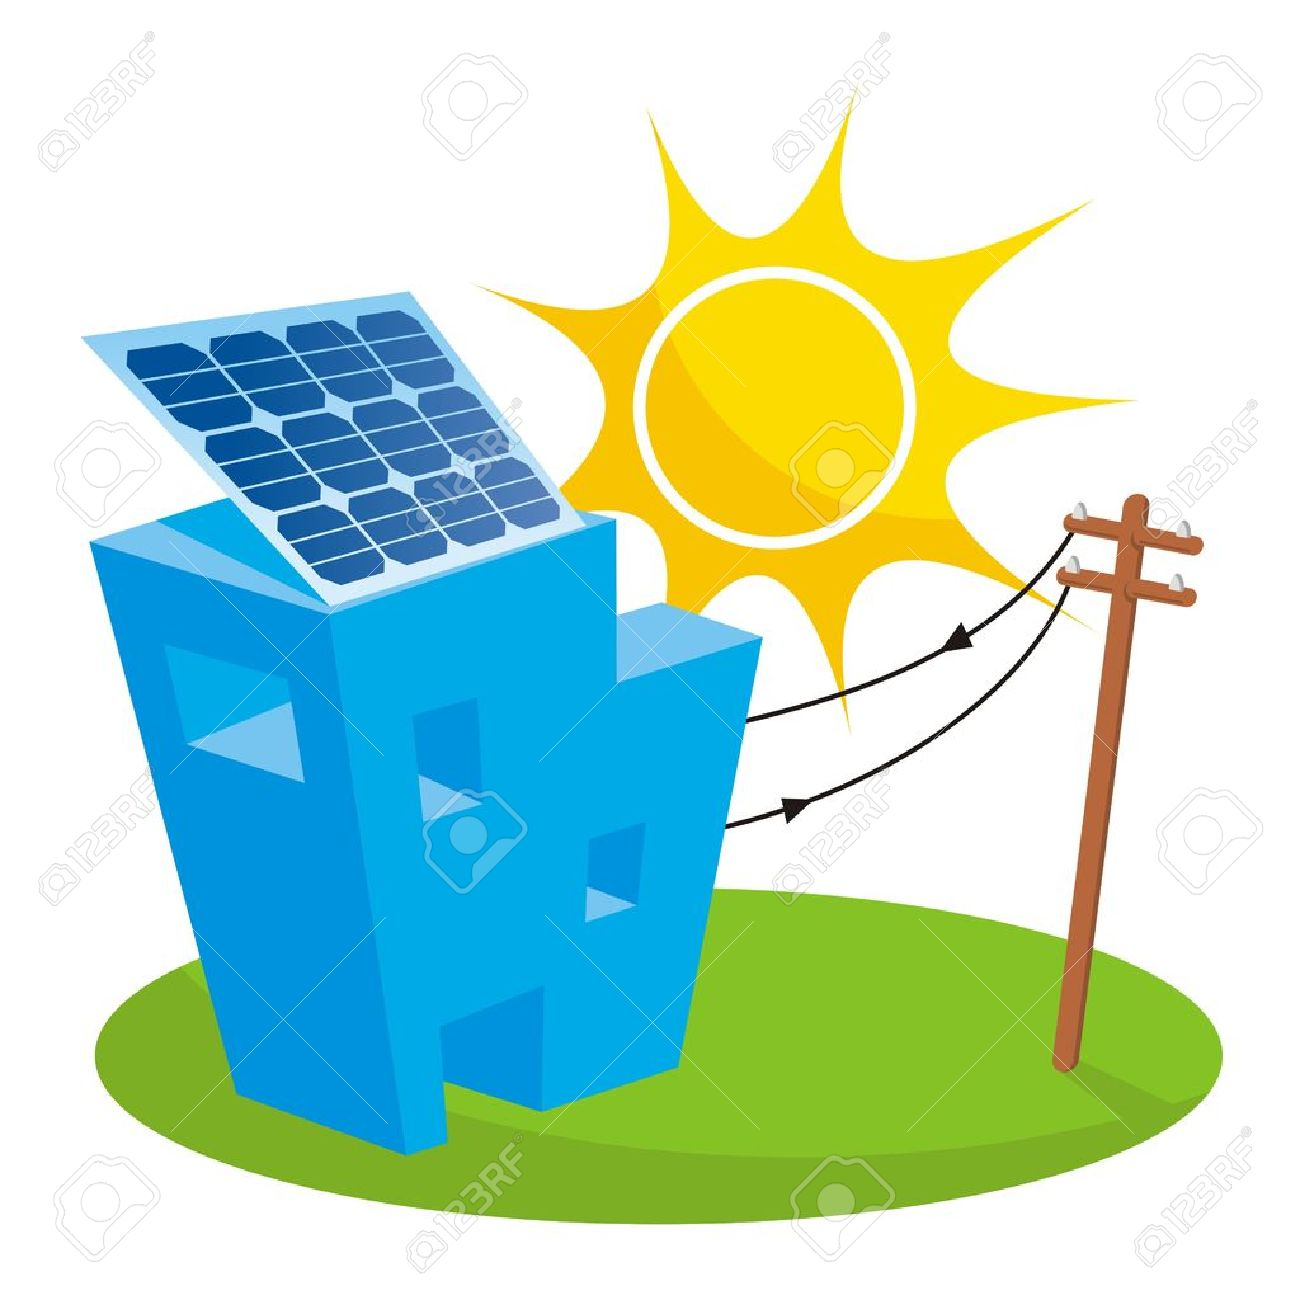 Solar panel on house roof connected to electricity pole Stock Vector - 8404715